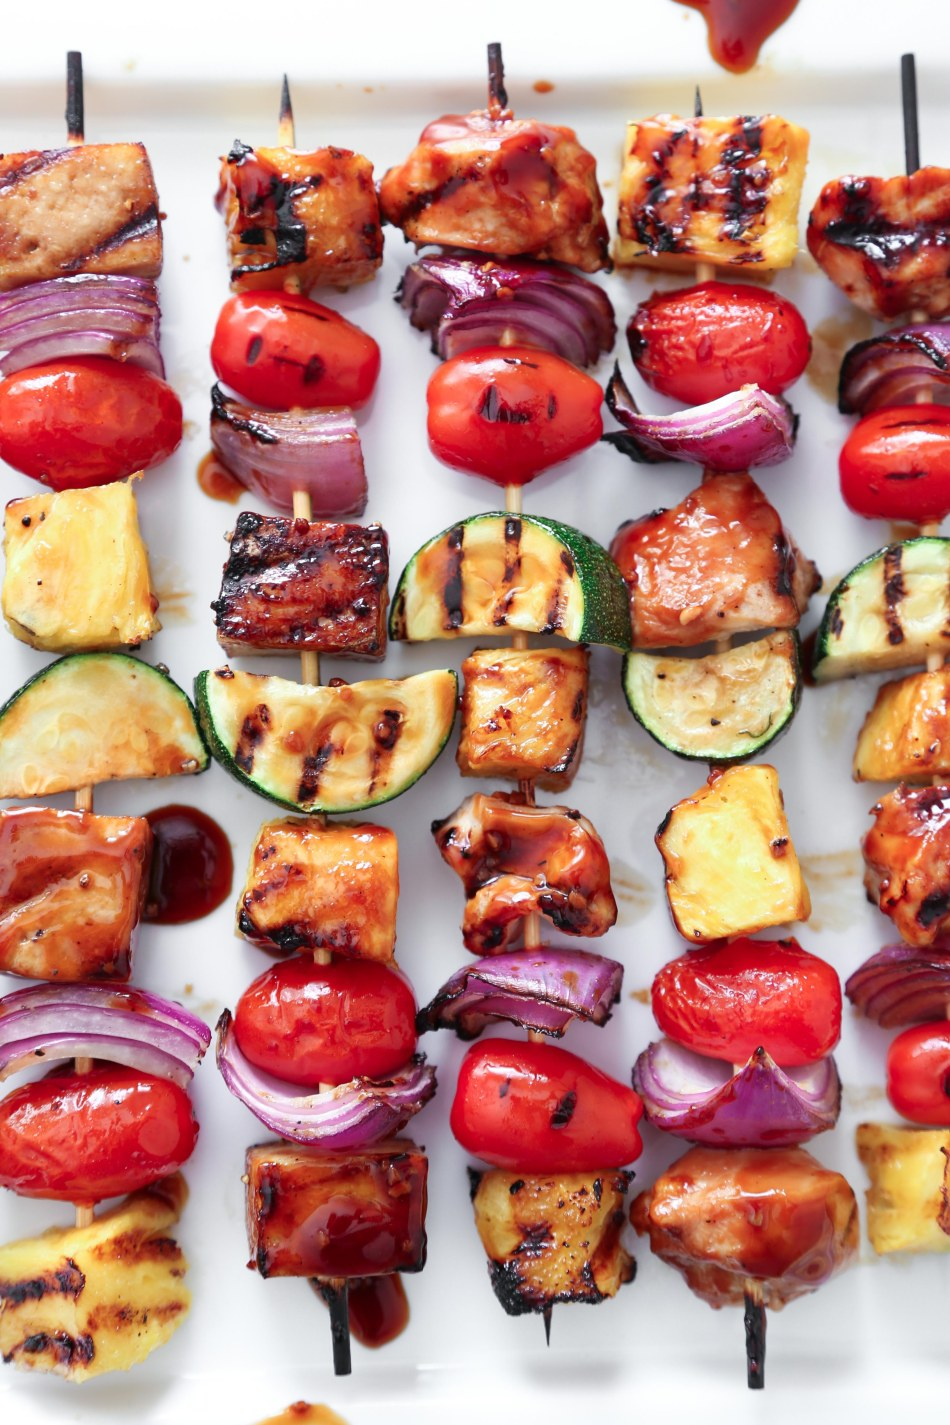 Asian Chopped Salad with Grilled Chicken or Tofu Teriyaki Kebabs